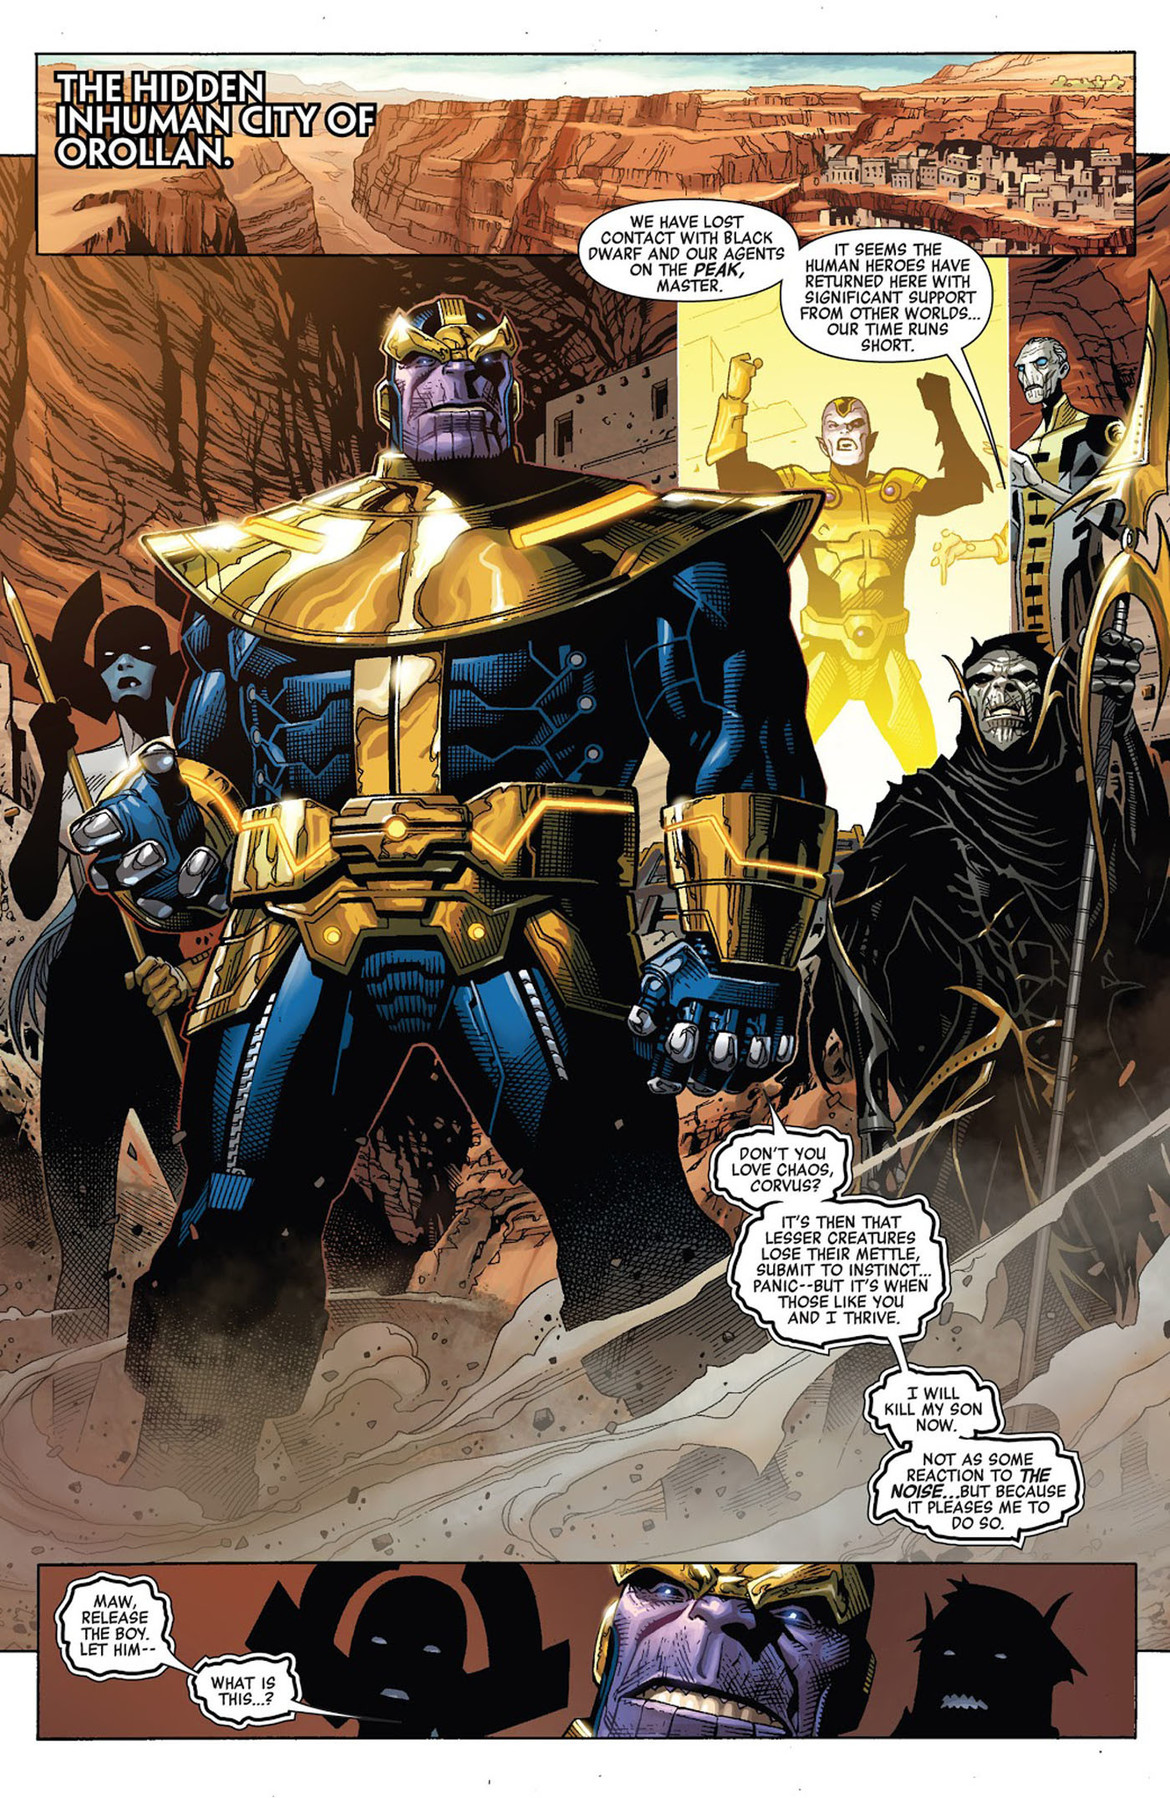 thanos_and_the_black_order.jpg